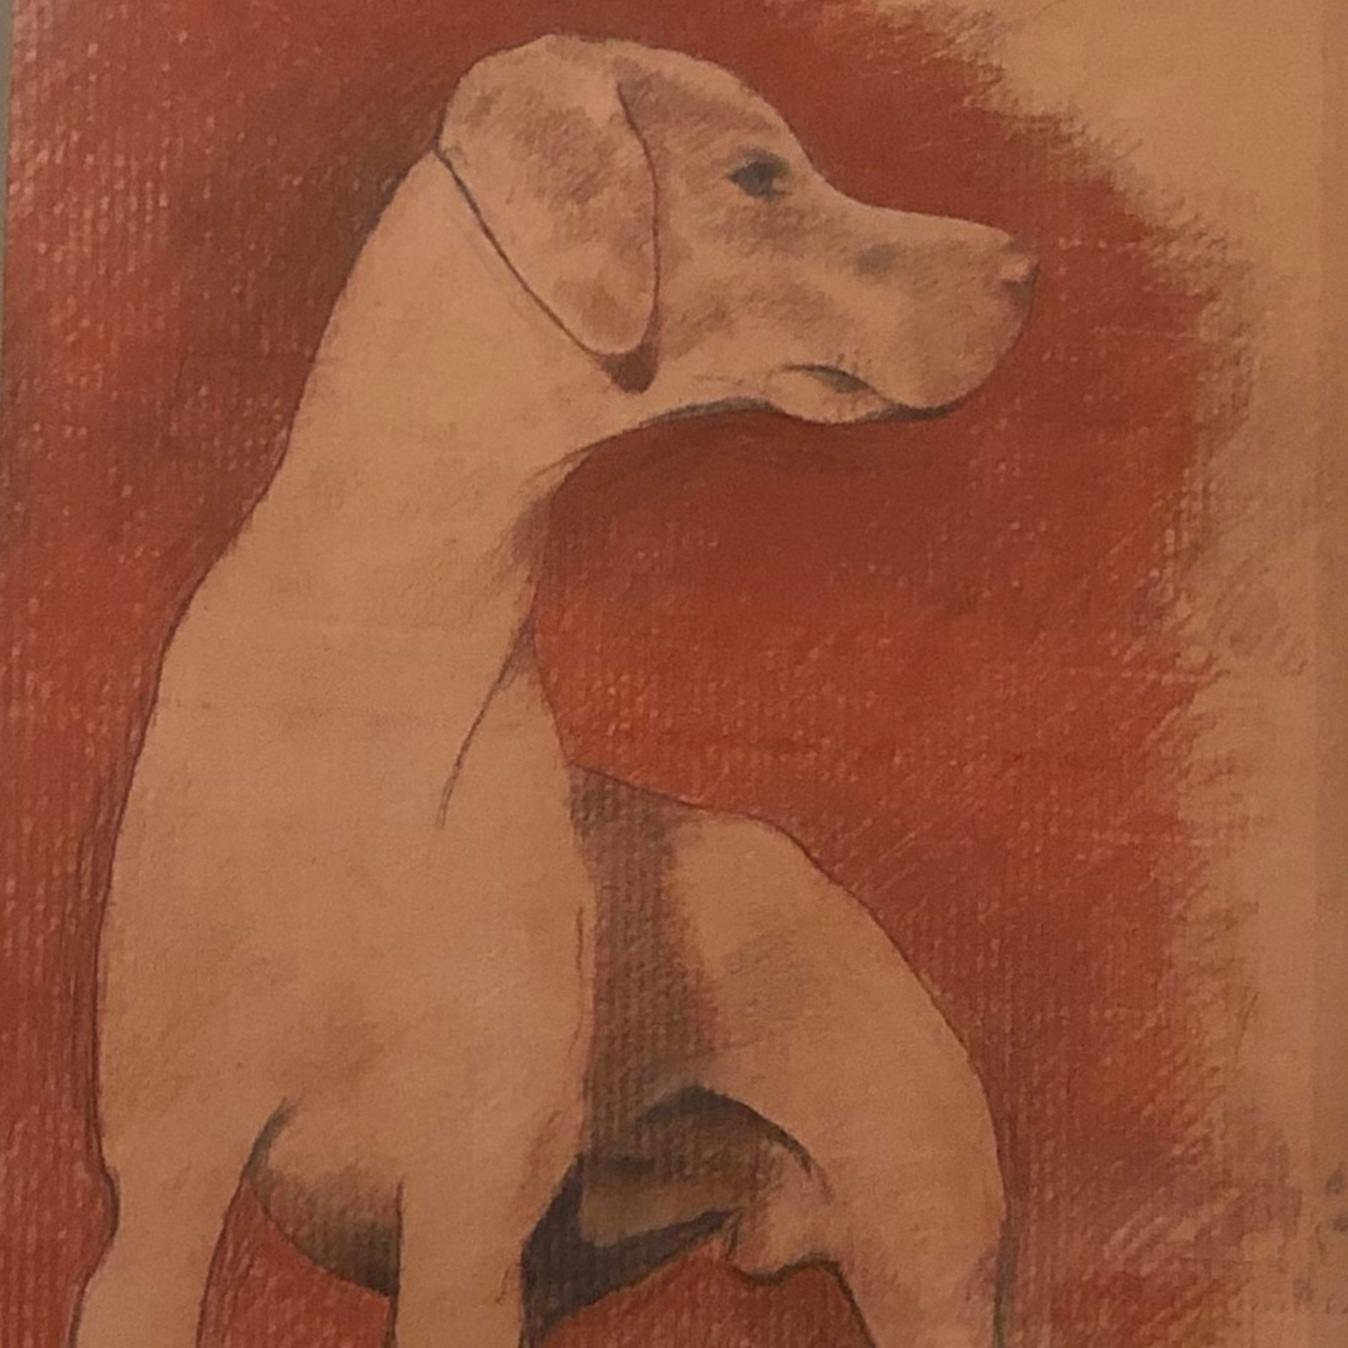 Charles InzerHunting Dog, 2019, pastel on cardboard, 36 x 24 in -